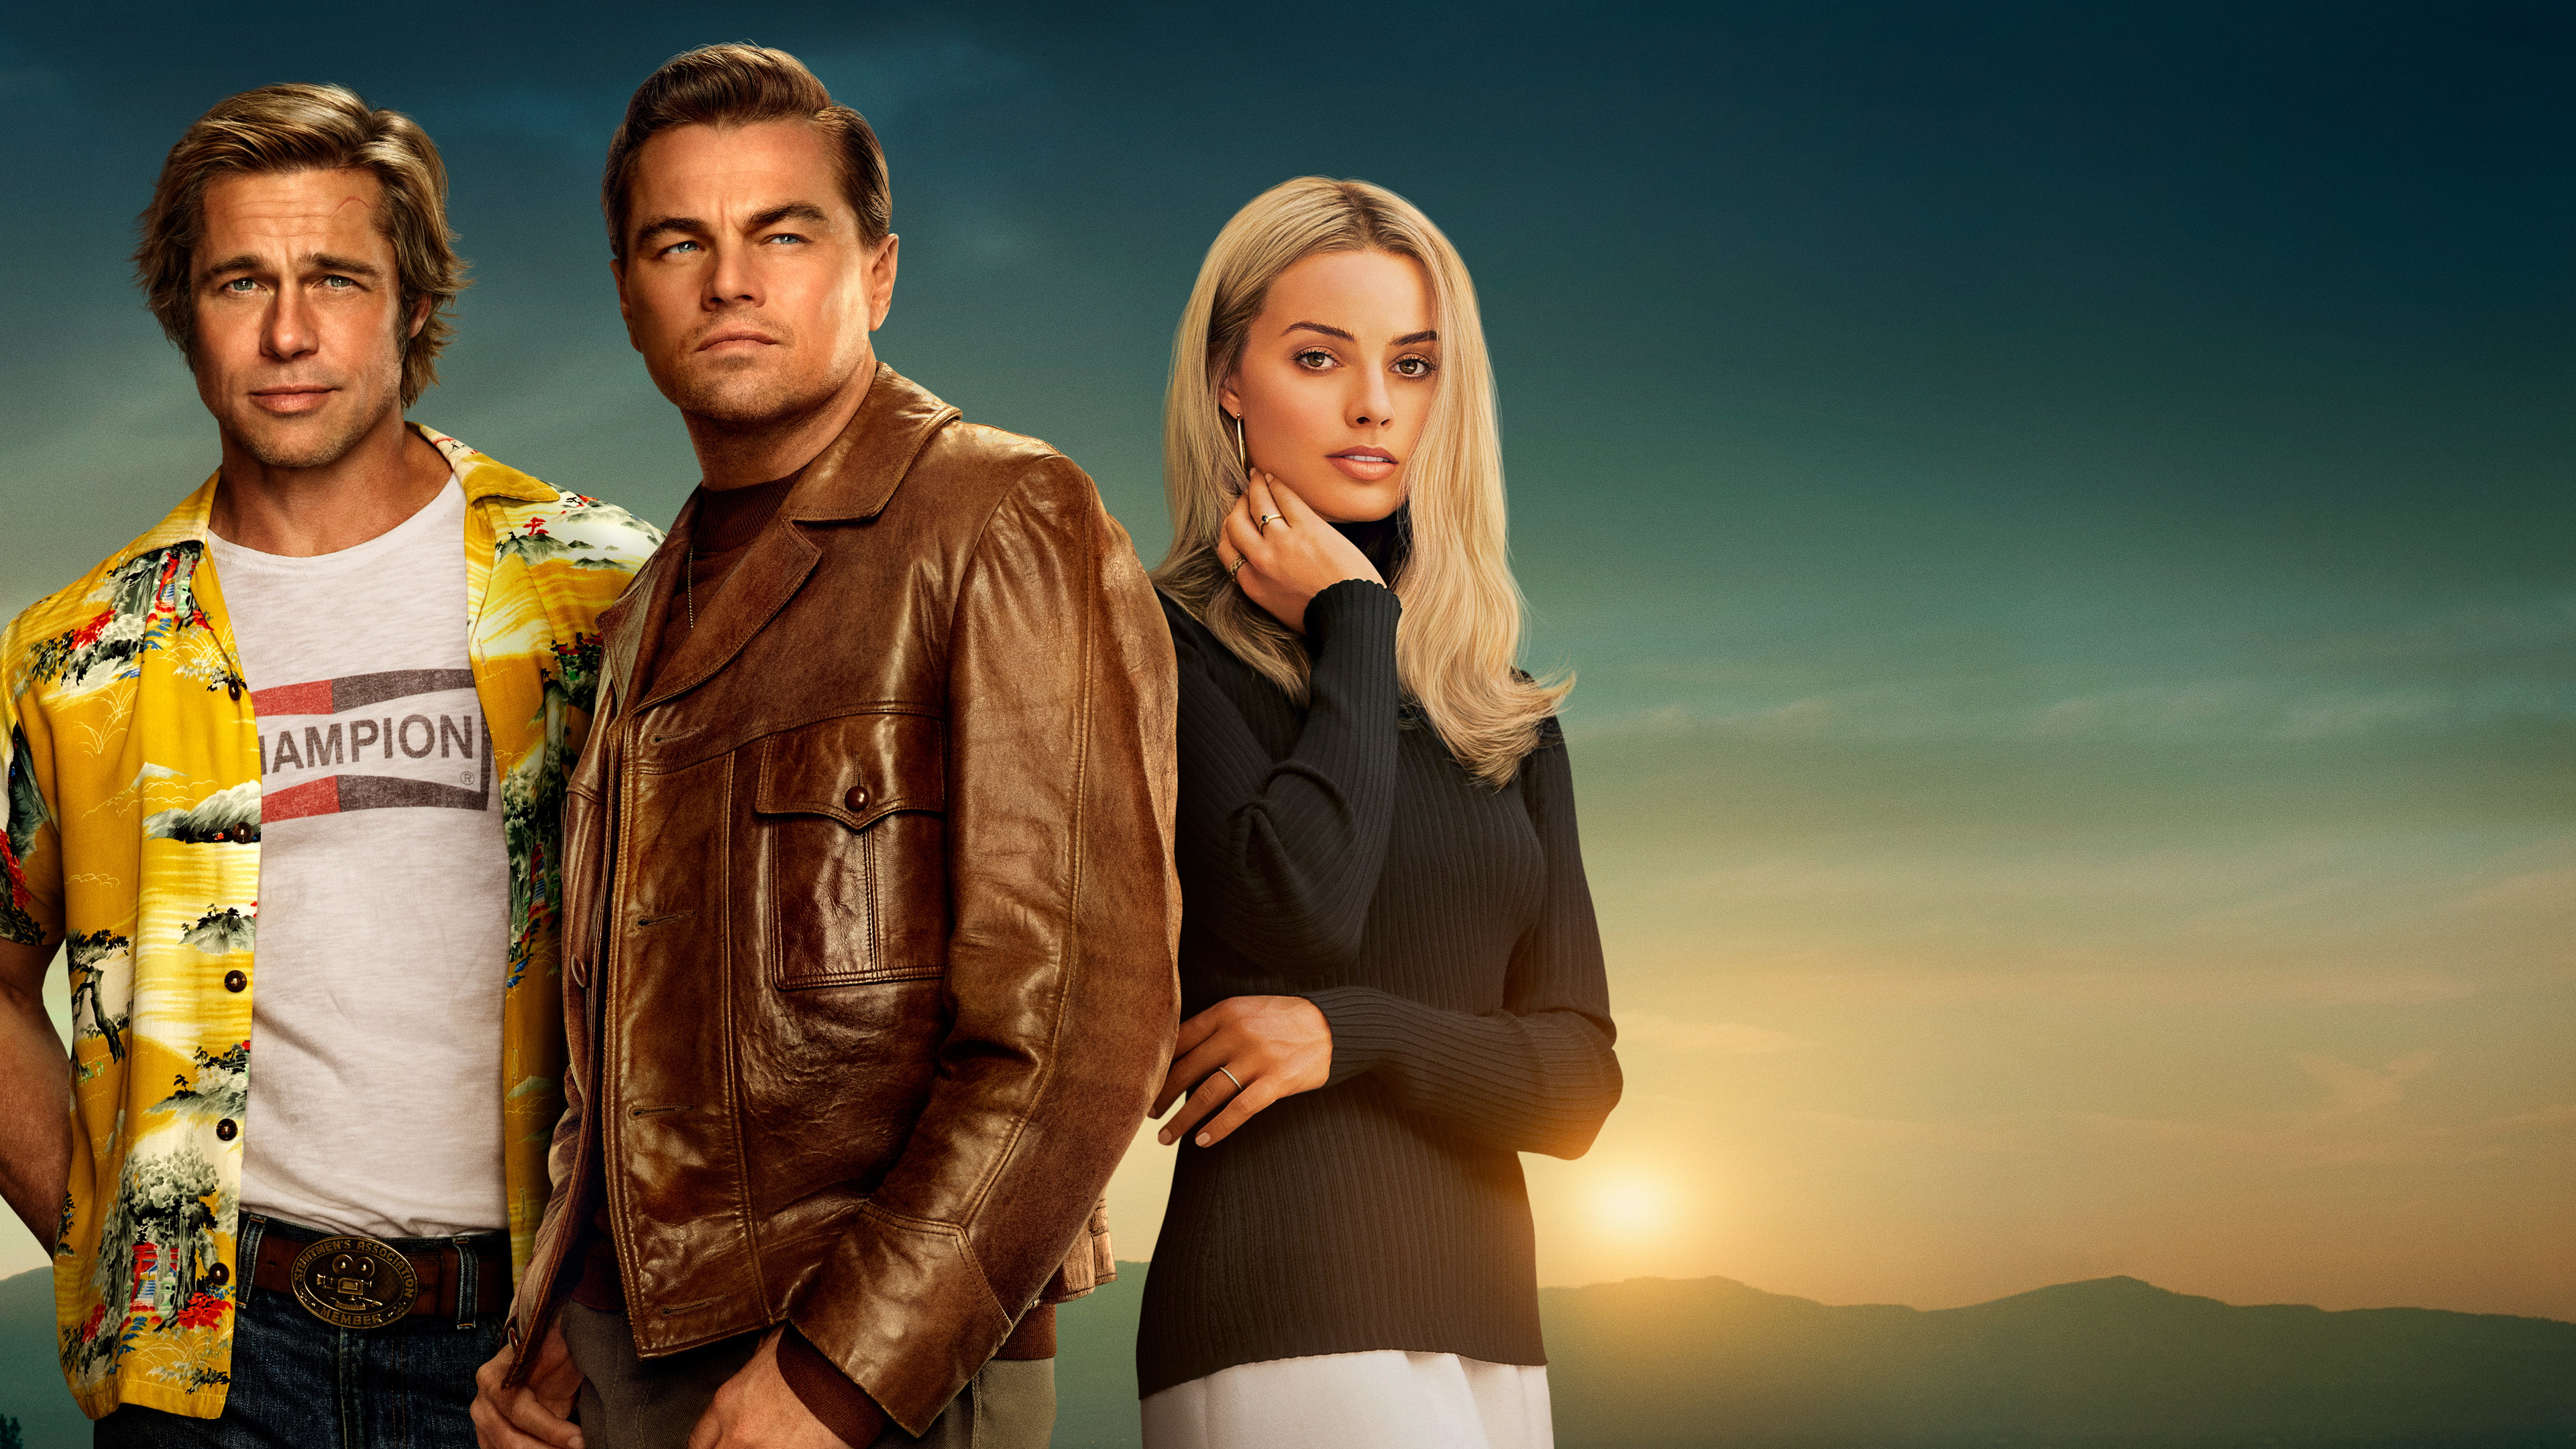 once upon a time in hollywood 2019 1569187292 - Once Upon A Time In Hollywood 2019 - once upon a time in hollywood wallpapers, movies wallpapers, male celebrities wallpapers, leonardo dicaprio wallpapers, hd-wallpapers, 8k wallpapers, 5k wallpapers, 4k-wallpapers, 2019 movies wallpapers